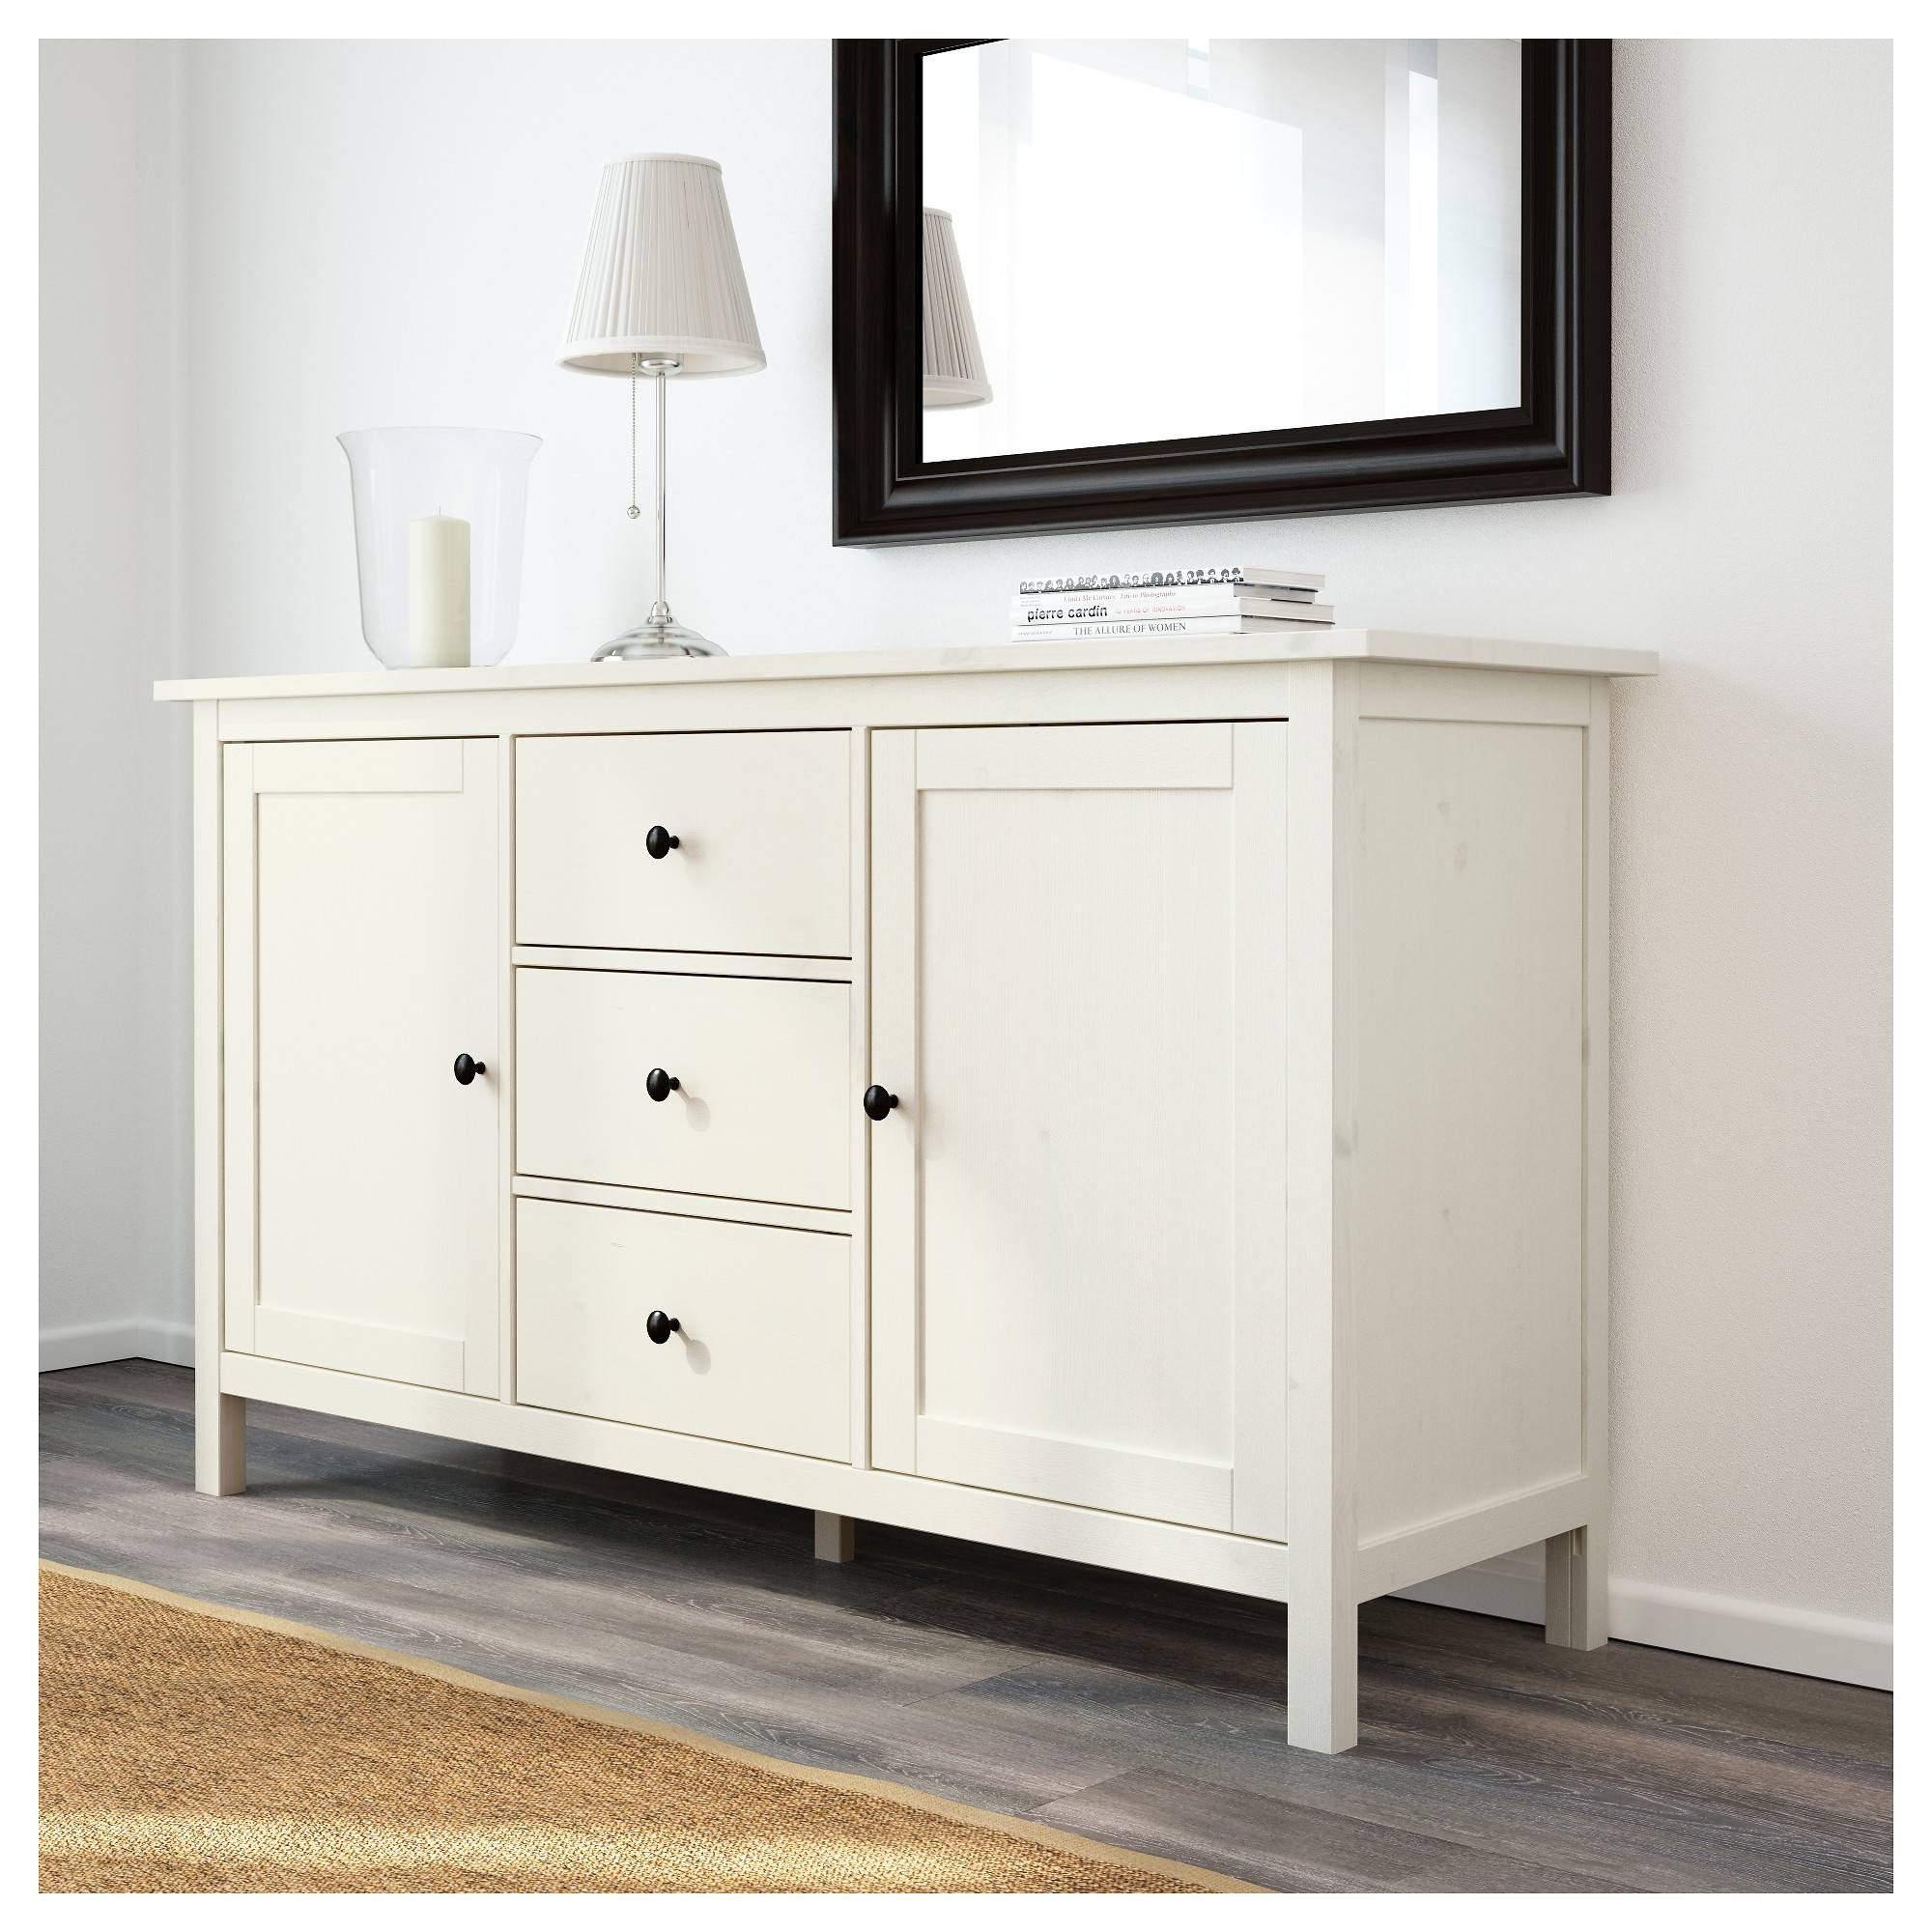 Hemnes Sideboard - White Stain - Ikea throughout Storage Sideboards (Image 6 of 15)